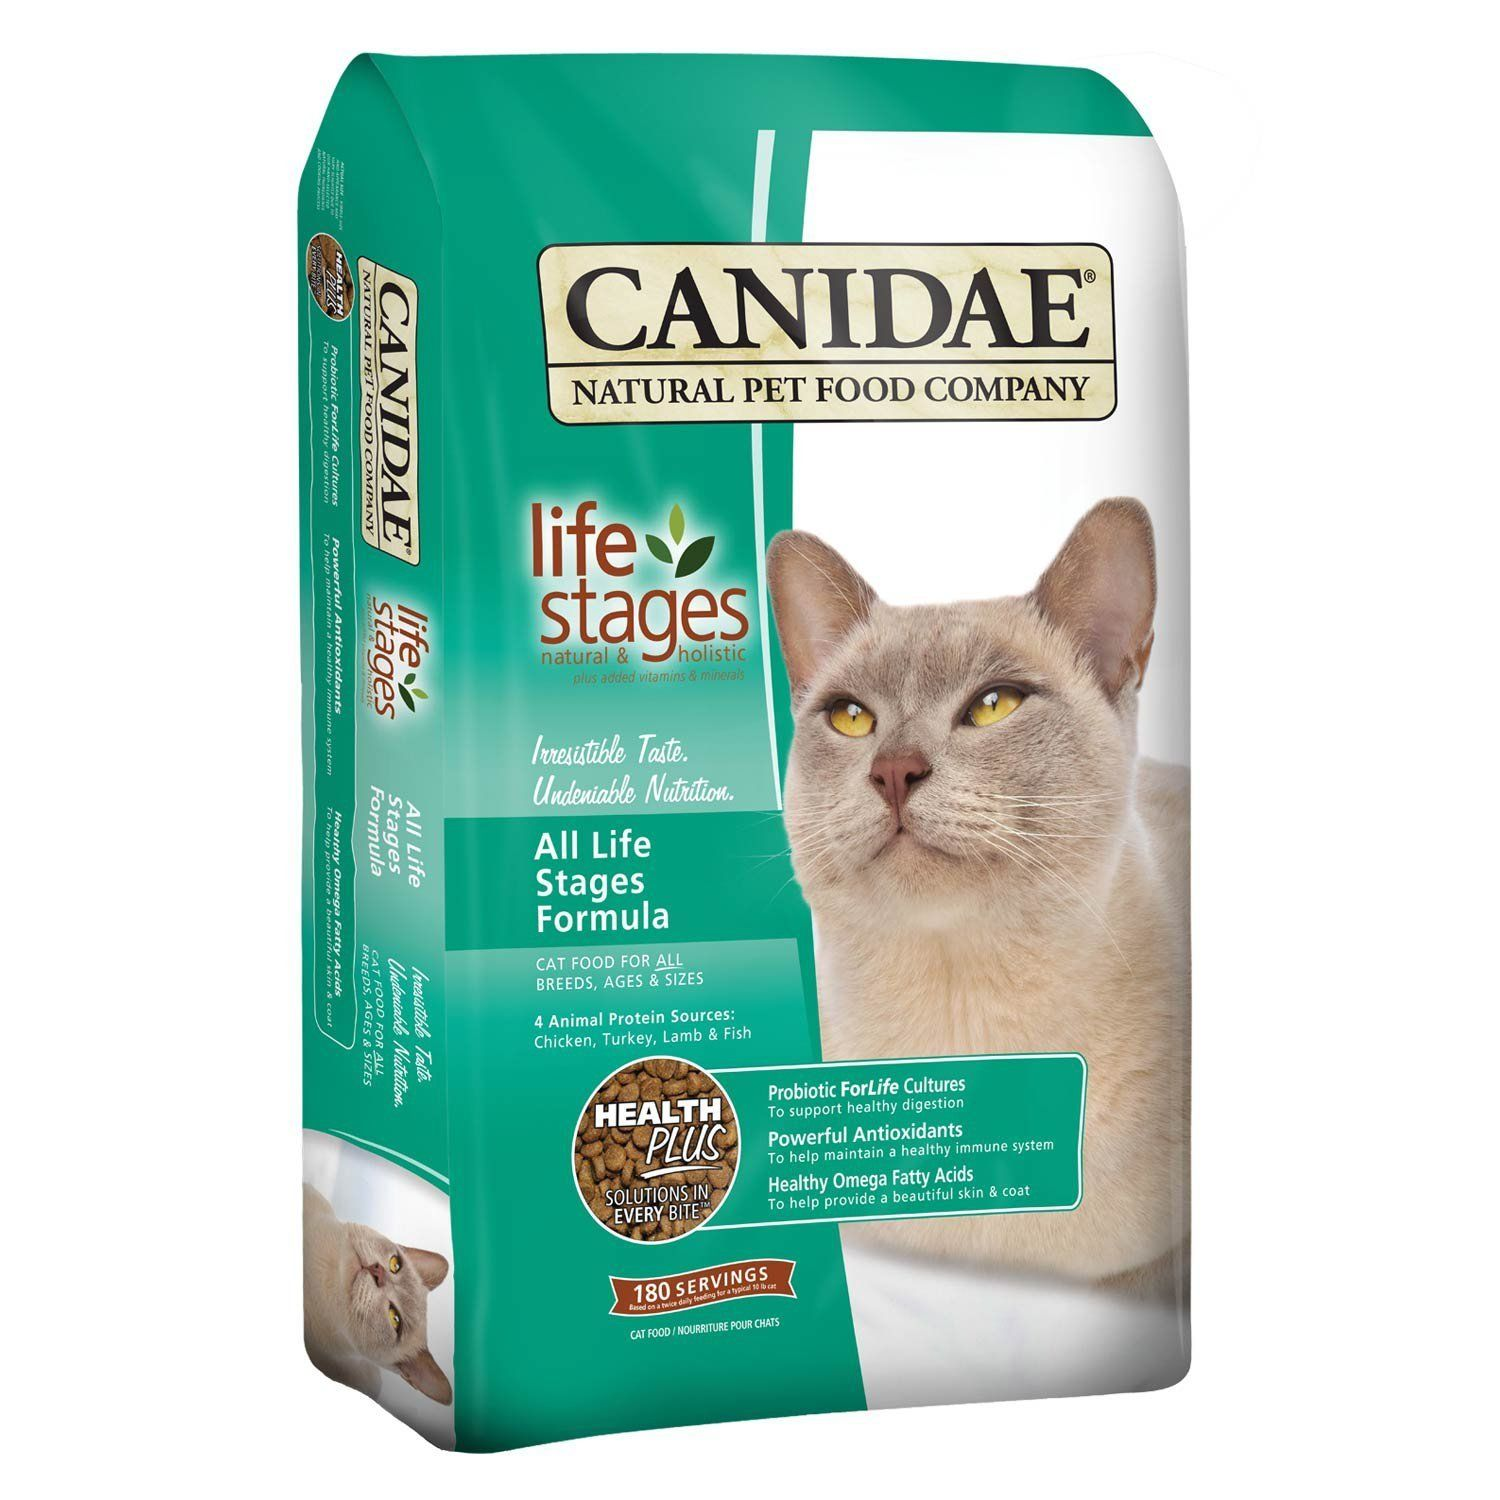 Best Dry Kitten Food Discover The Best Dry Food For Kittens Kitten Food Dry Cat Food Cat Food